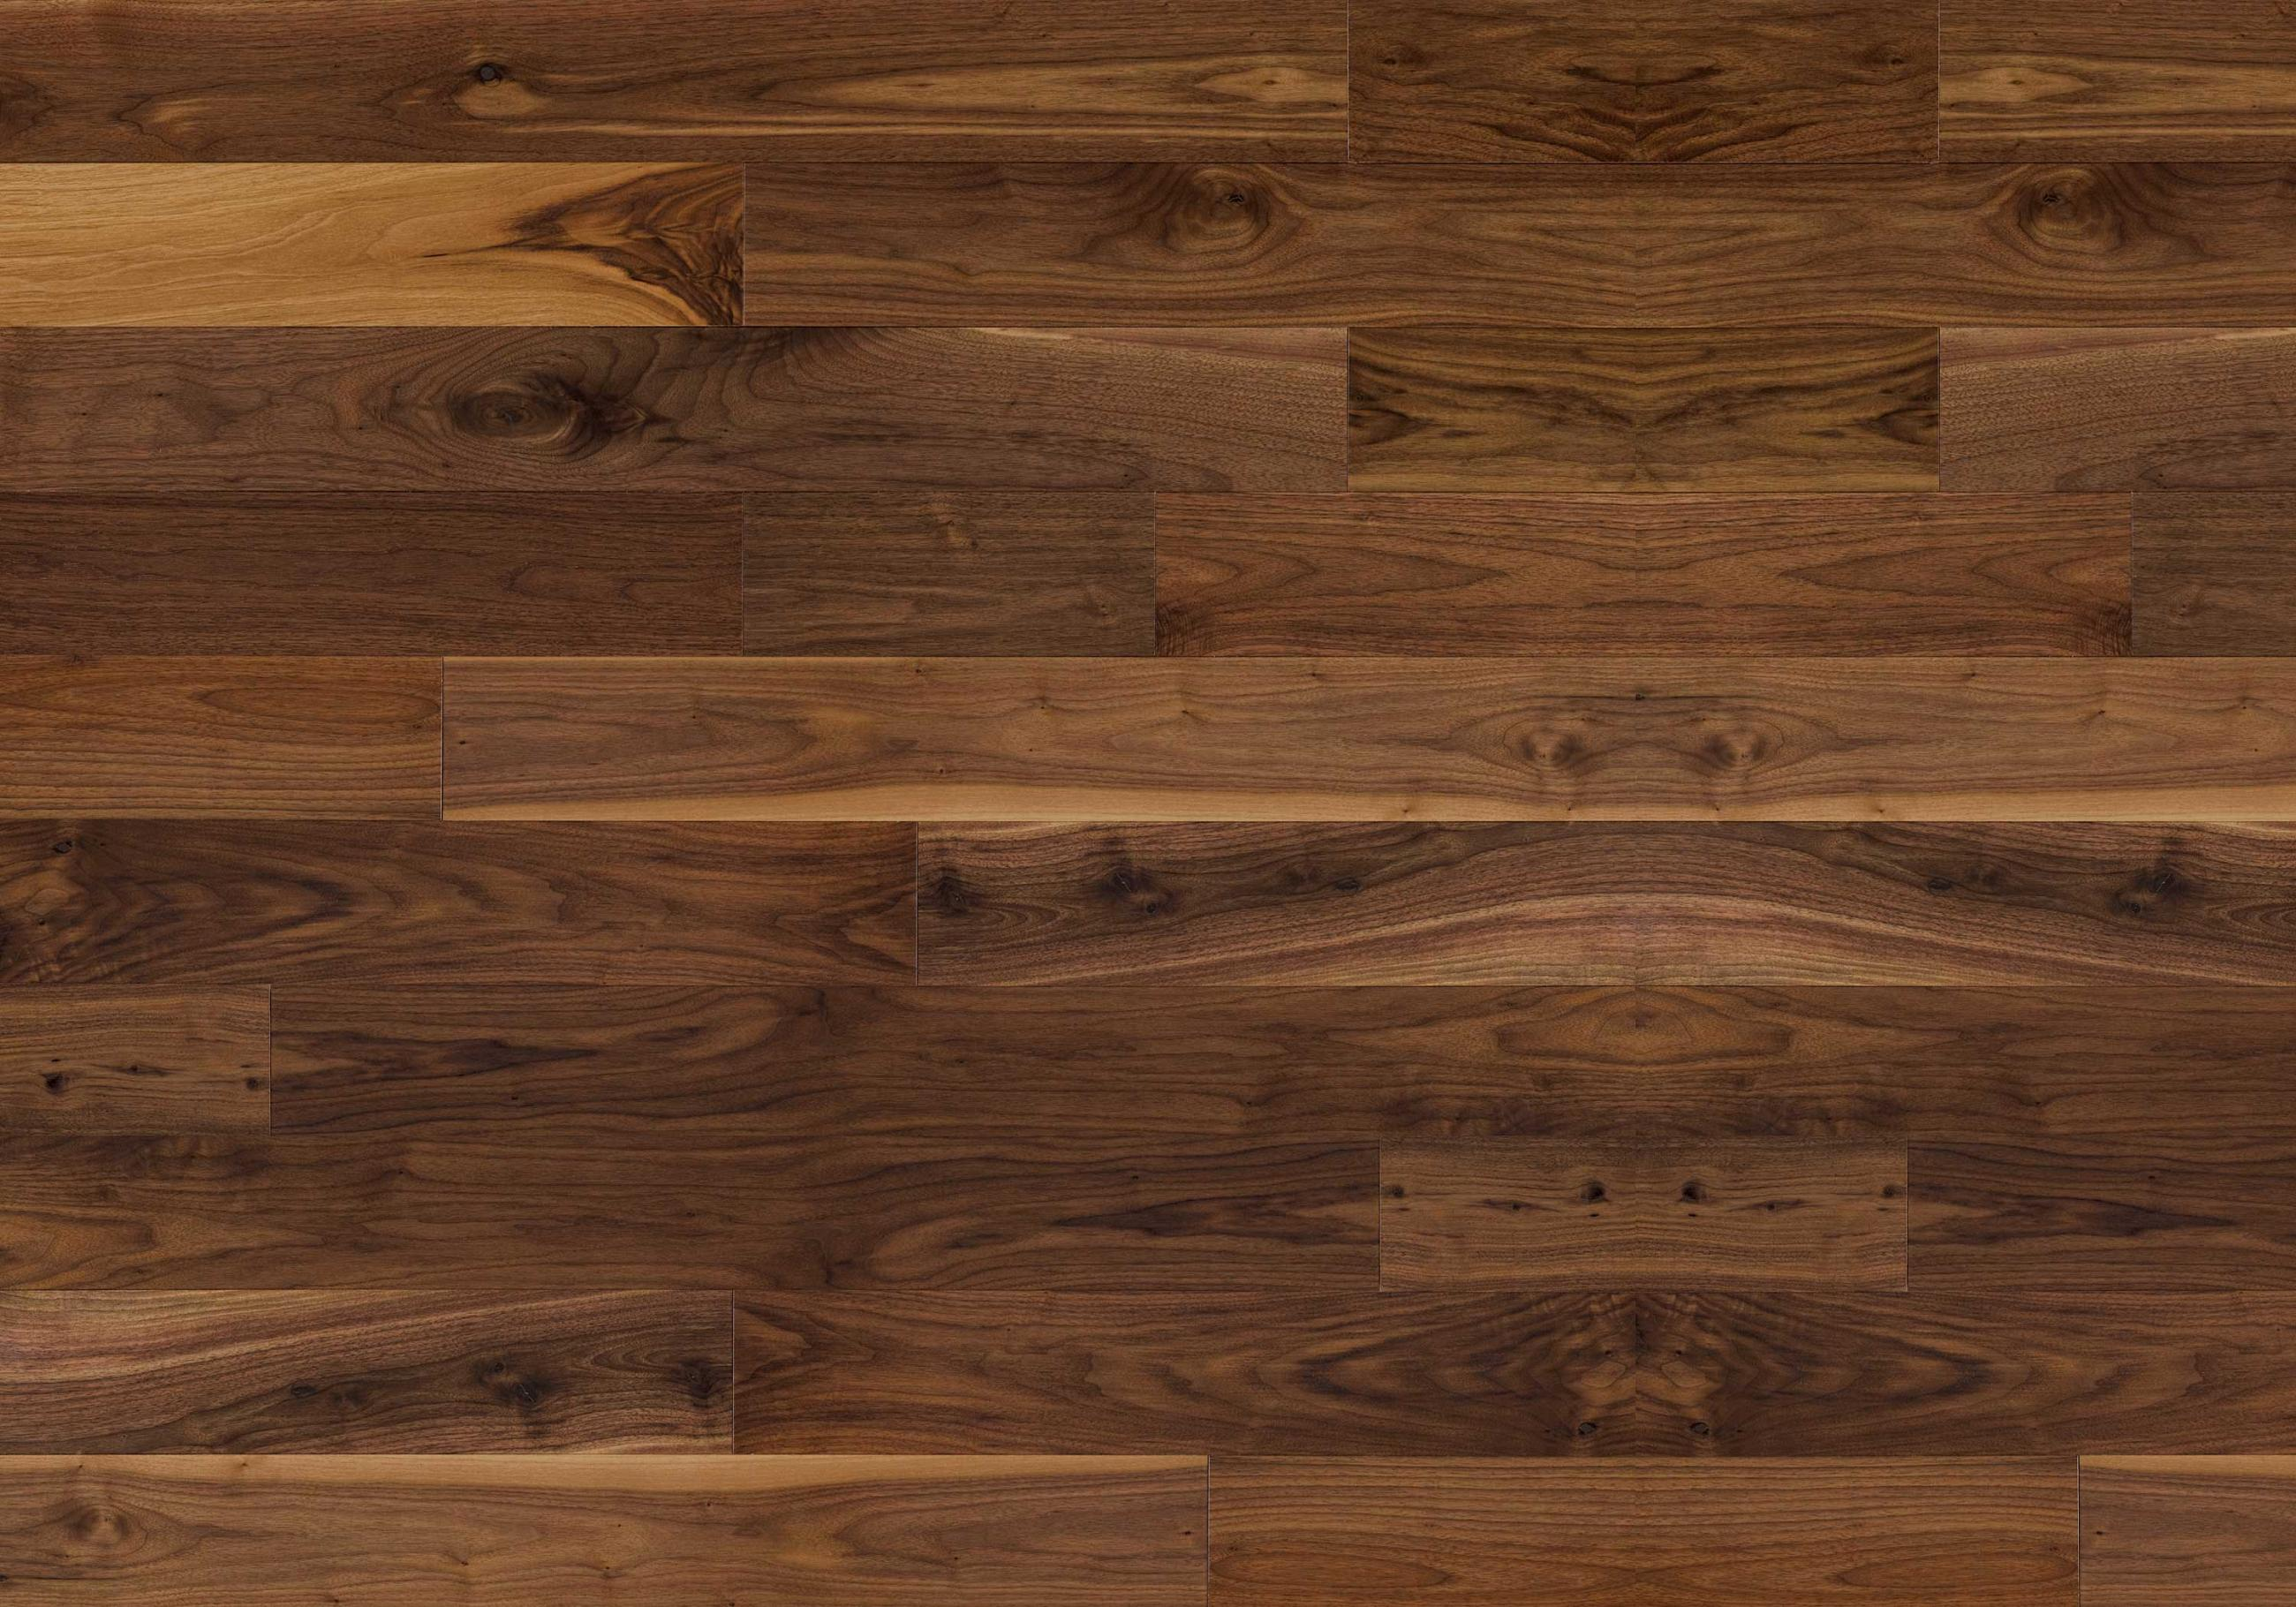 Lauzon ambiance collection black walnut natural aa floors toronto Wood tile flooring